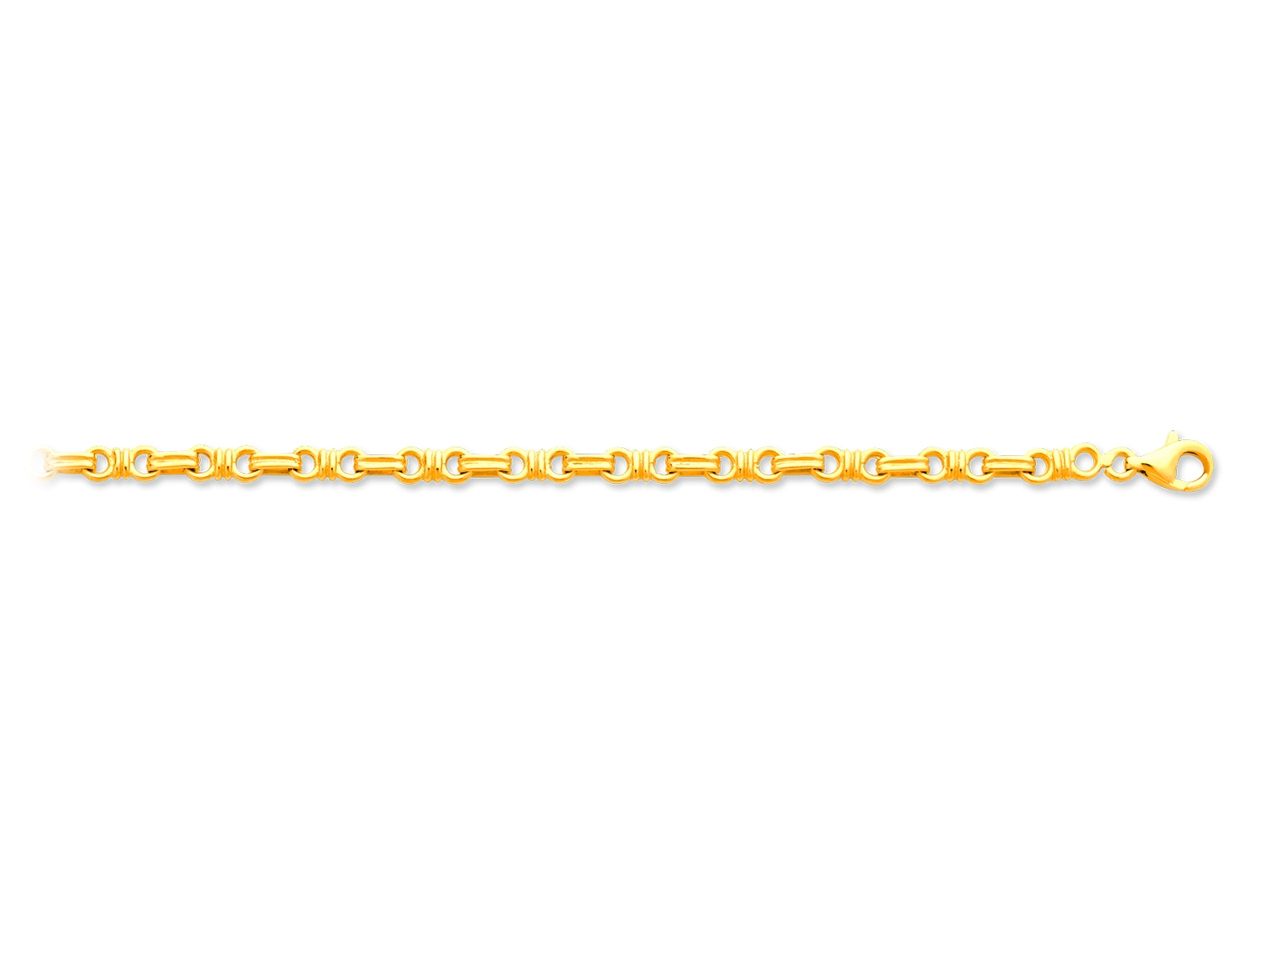 Bracelet Noeuds 4,4 mm, 20 cm, Or jaune 18k